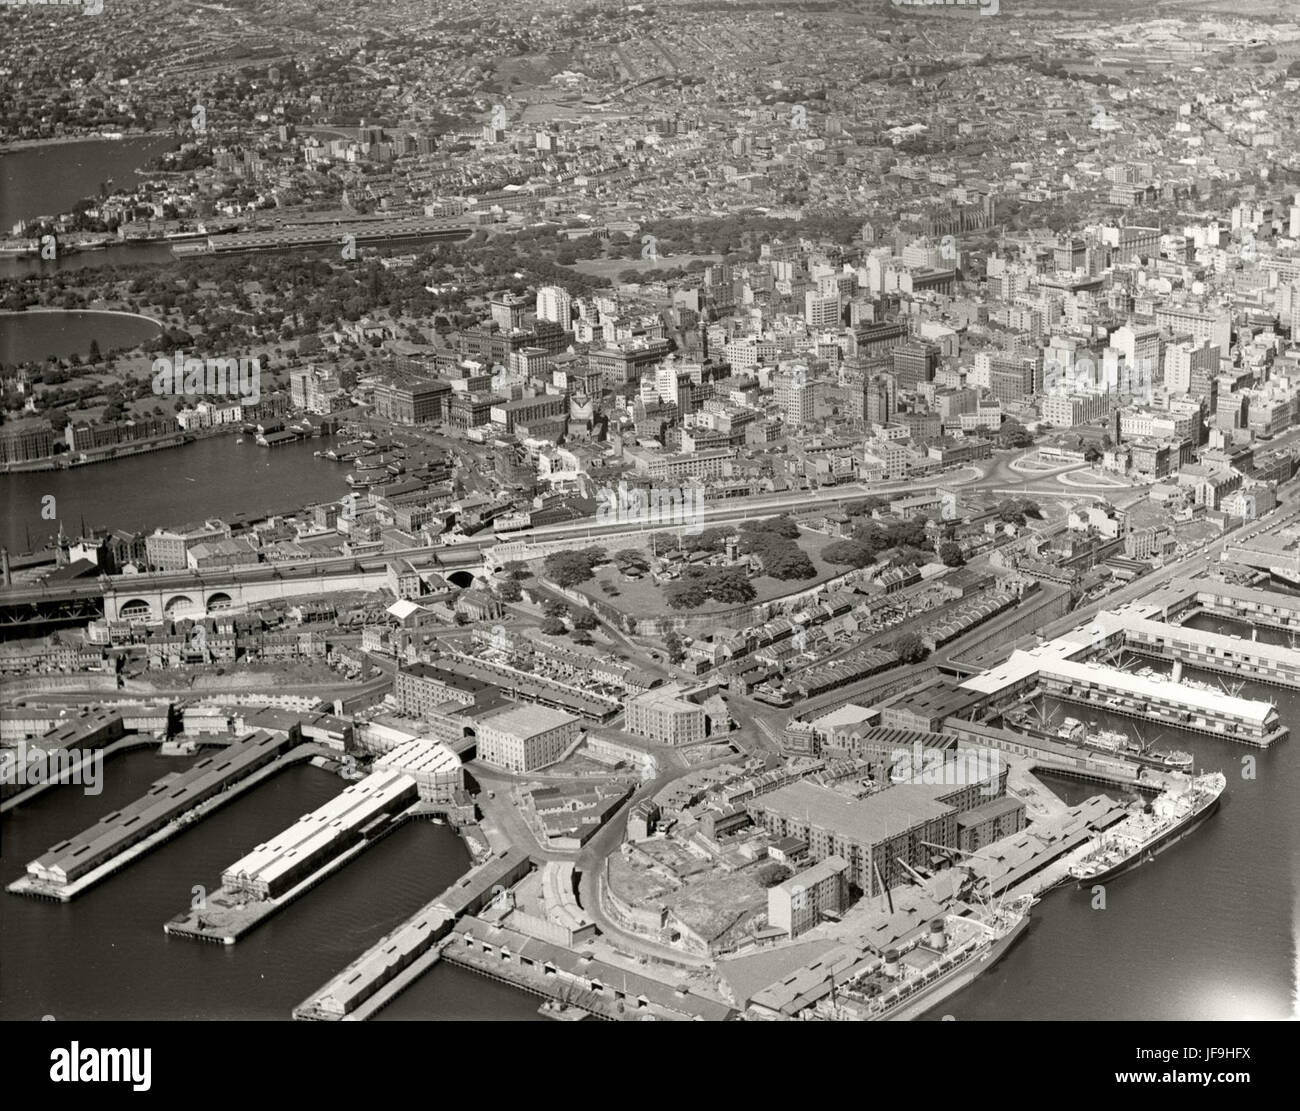 Millers Point & Circular Quay - 29 March 1937 29868196560 o - Stock Image